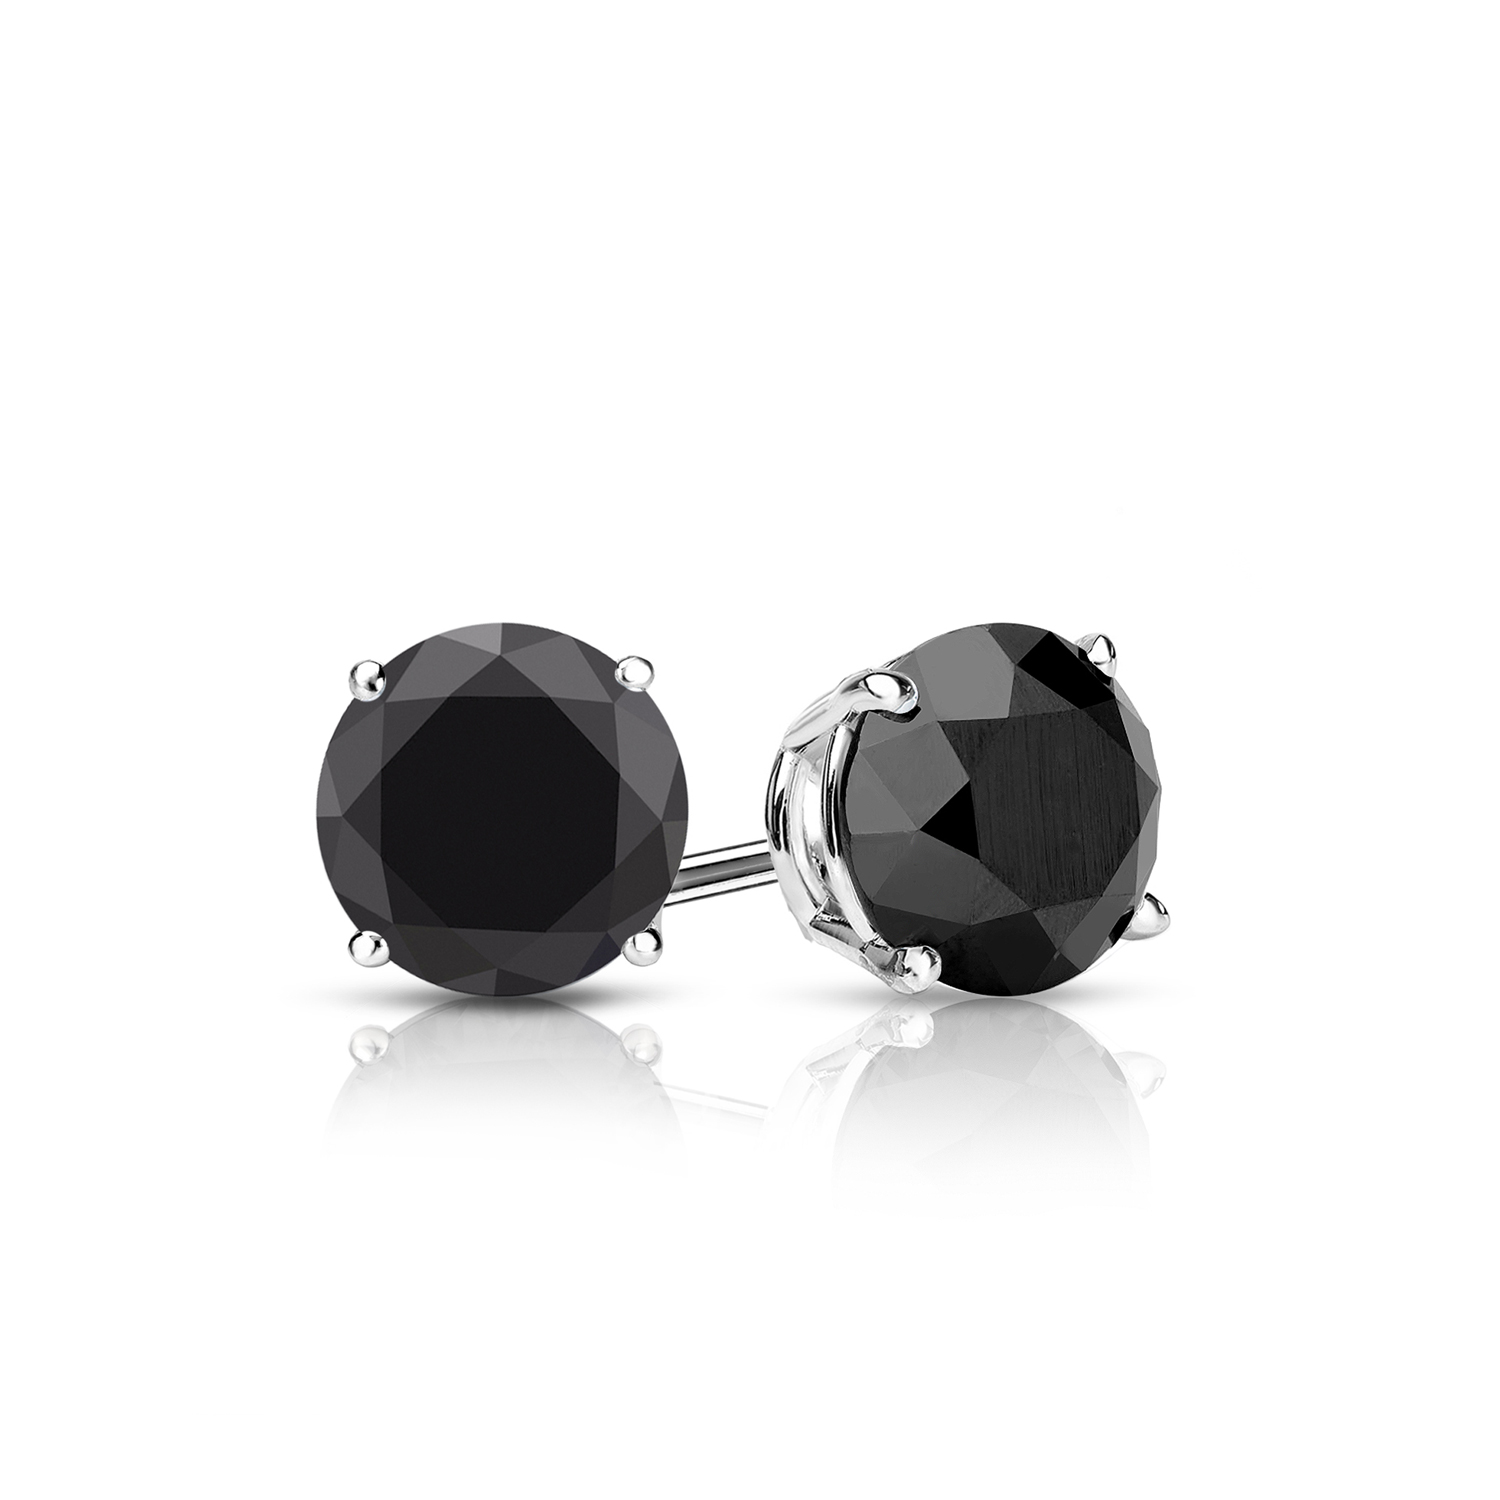 Certified 0.50 cttw Round Black Diamond Stud Earrings in 14k White Gold 4-Prong Basket (AAA)